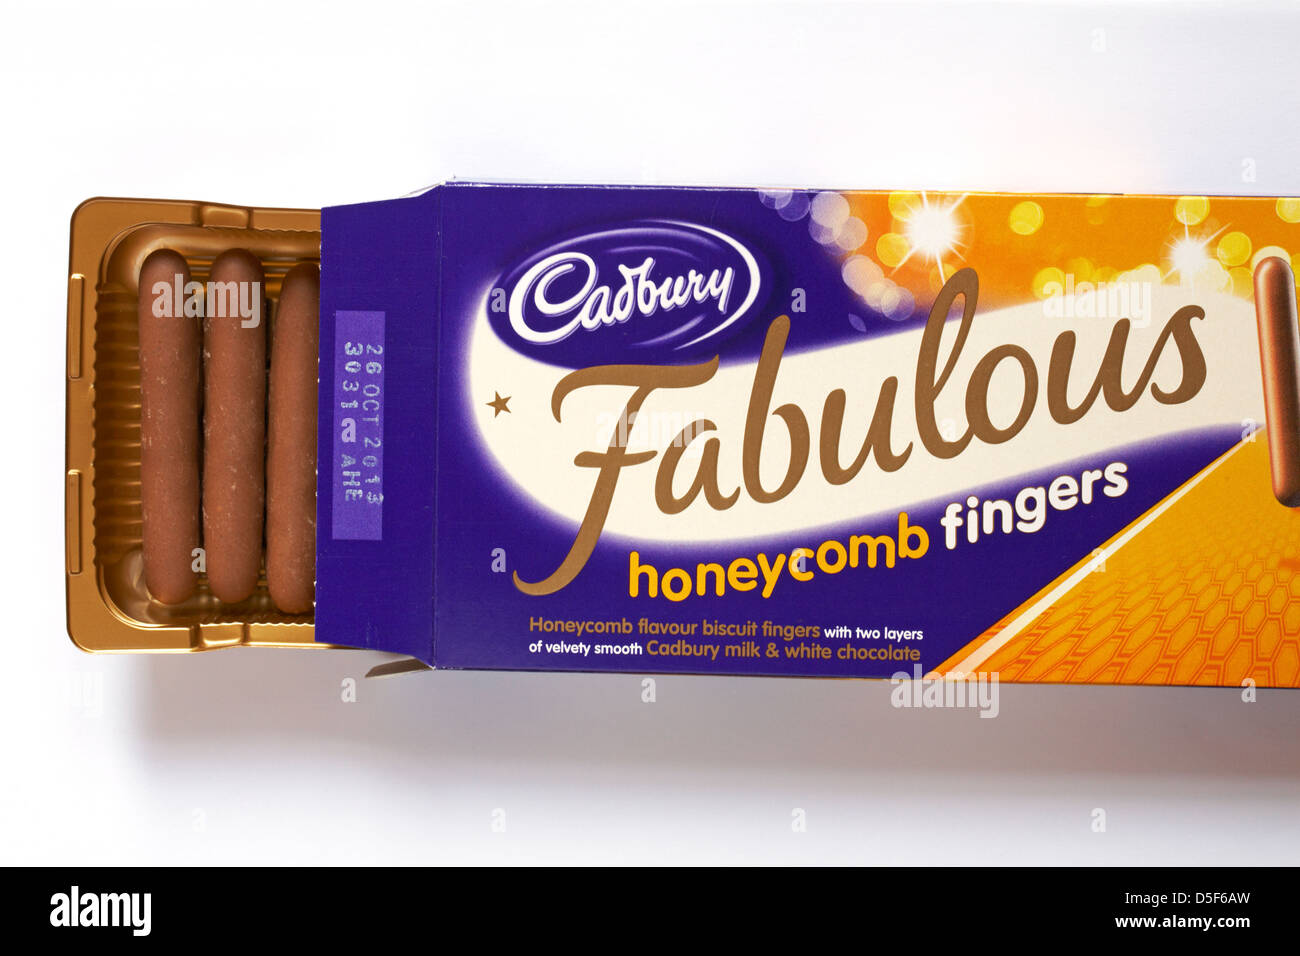 Cadbury Chocolate Fingers Stock Photos & Cadbury Chocolate Fingers ...